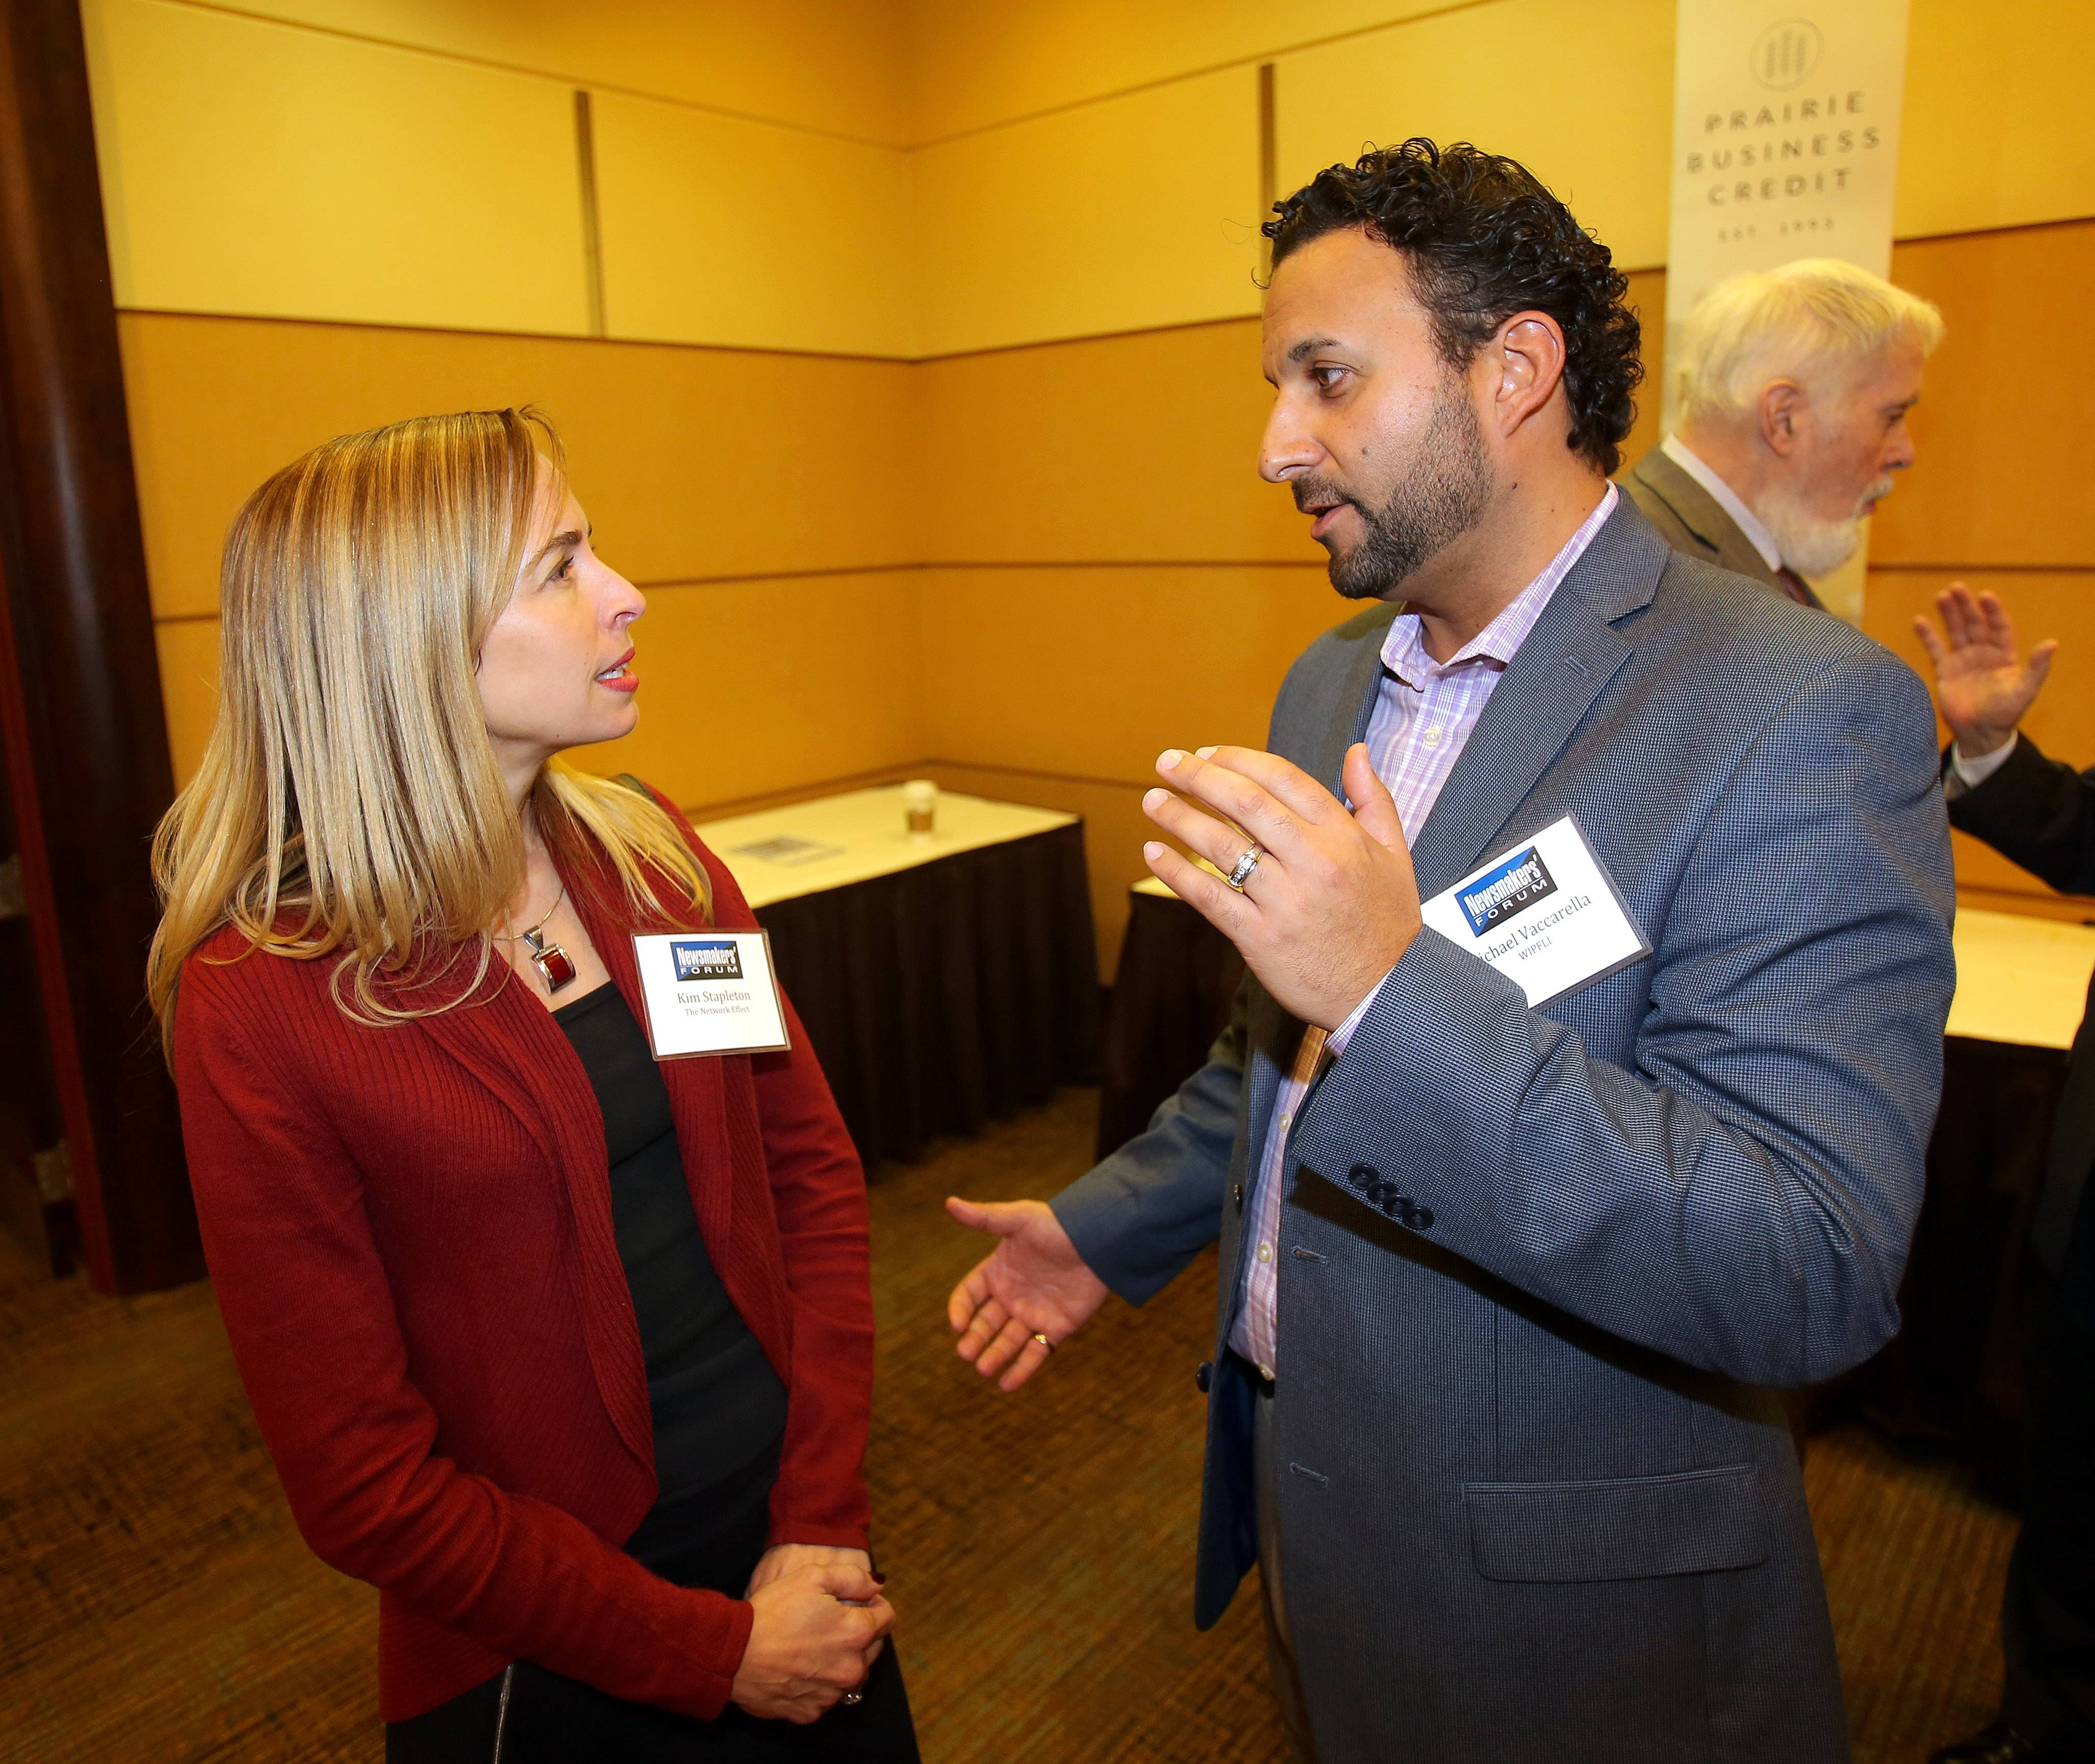 Steve Lundy/slundy@dailyherald.com Kim Stapleton of The Network Effect, left, and Michael Vaccarella of WIPFLI talks during the Business Ledger's Newsmakers Forum on banking and finance at the DoubleTree Hotel in Arlington Heights Thursday.